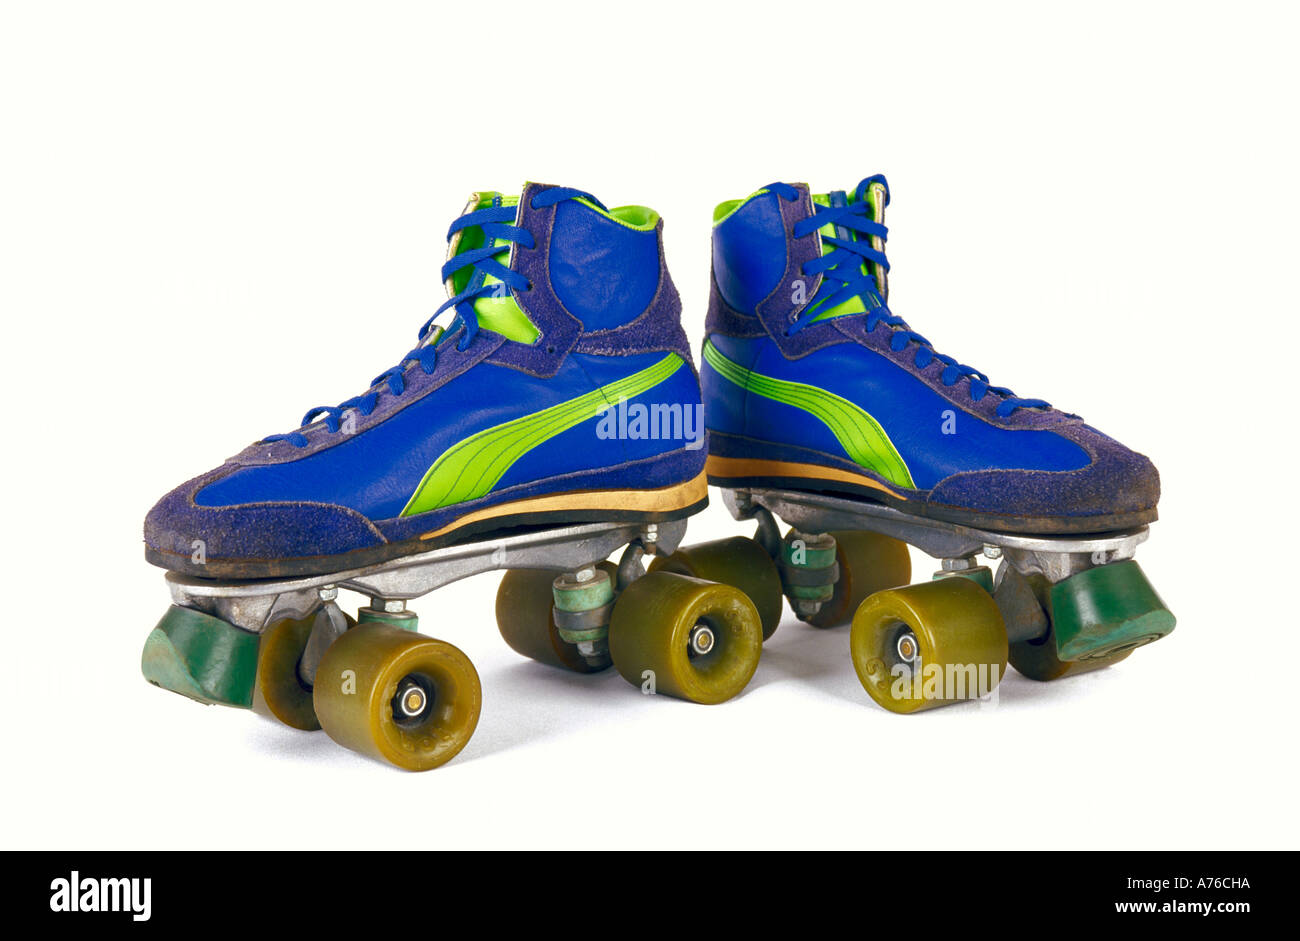 Retro style 1970's 1980's blue roller skates on a white background. - Stock Image